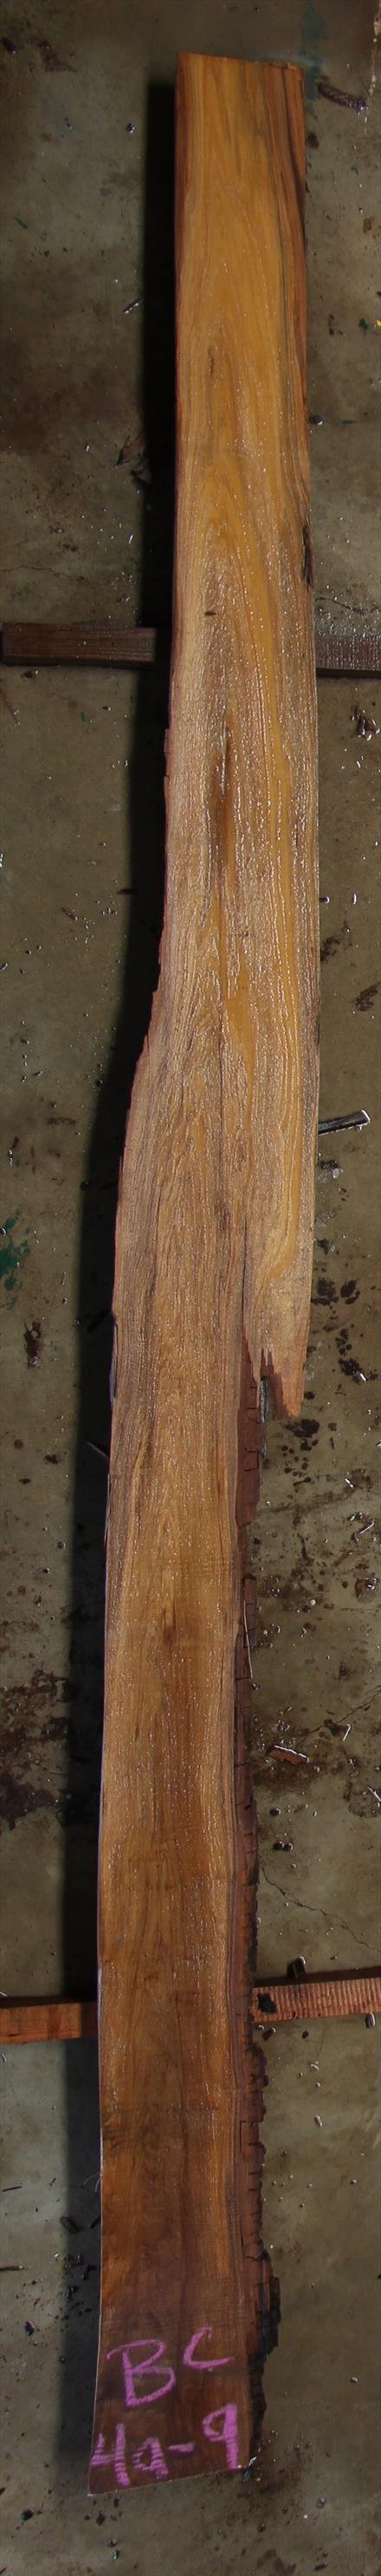 Buried Cypress Slab BC004a-09